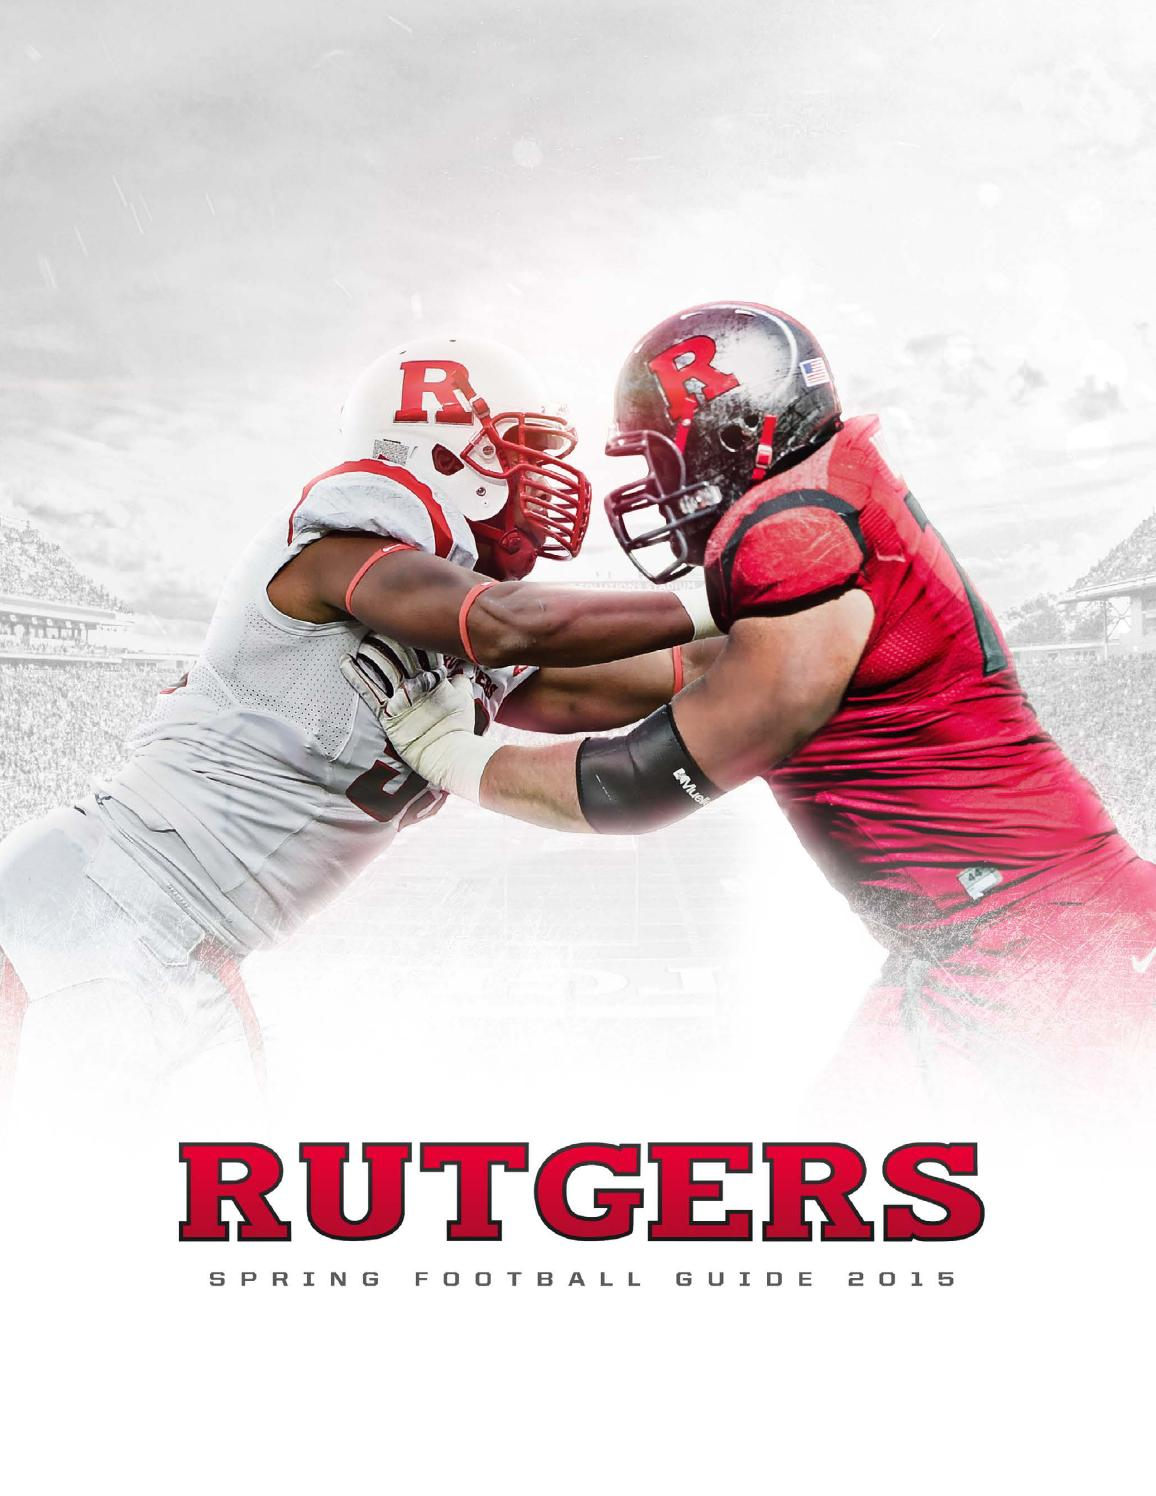 d17983463fb 2015 Rutgers Football Spring Guide by Rutgers Athletics - issuu